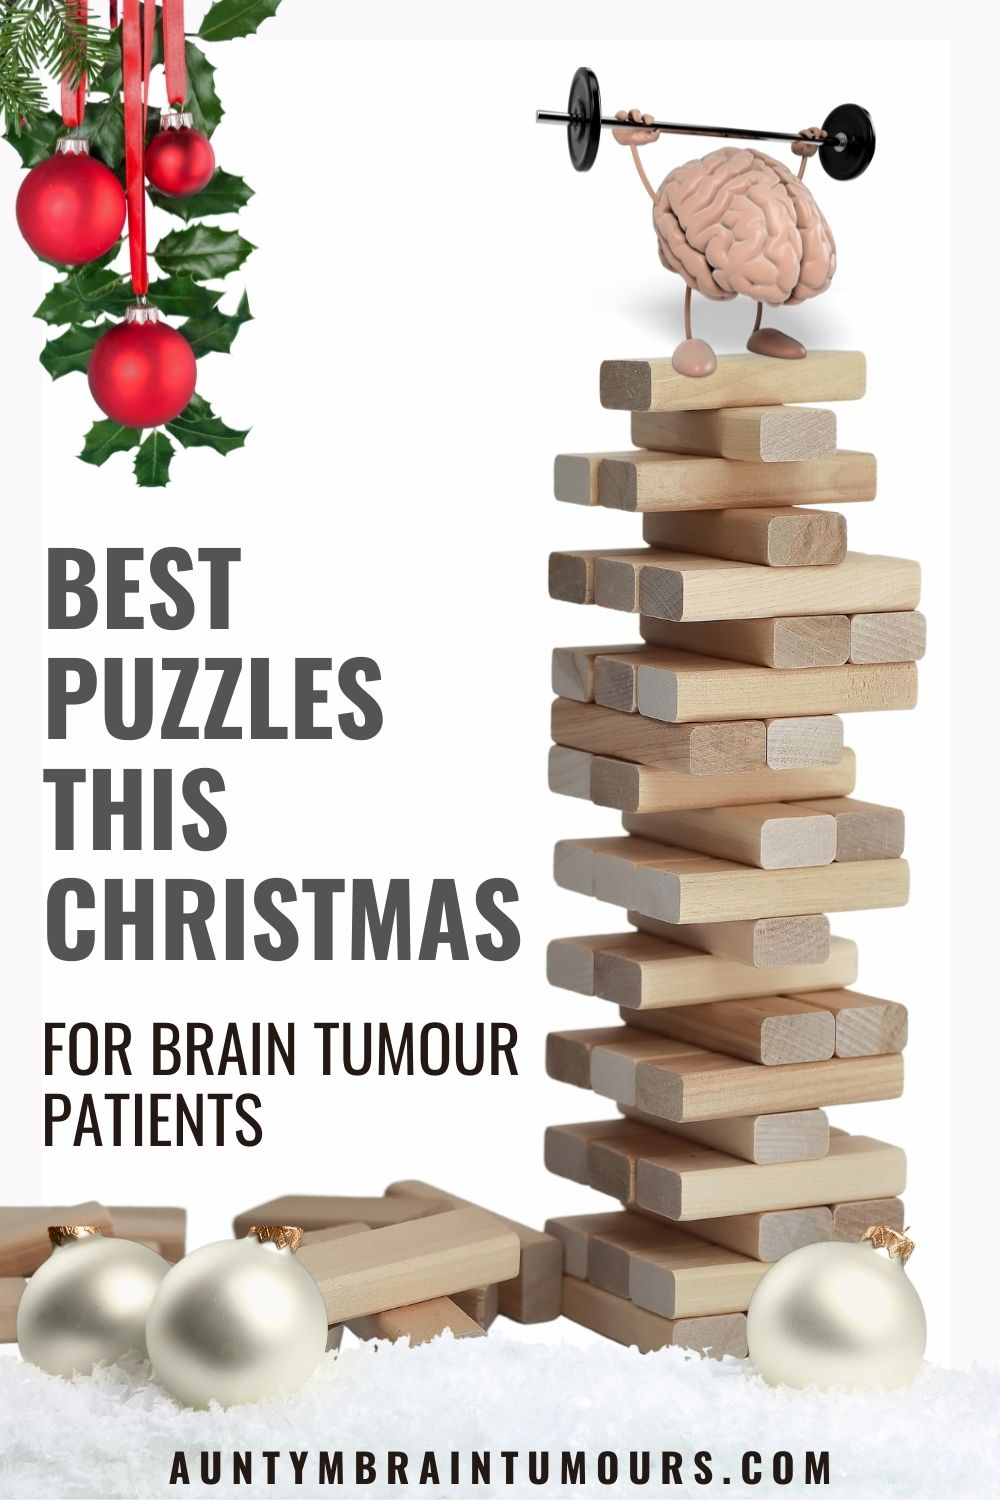 Puzzles Brain Teasers for Brain Tumour Patients This Christmas